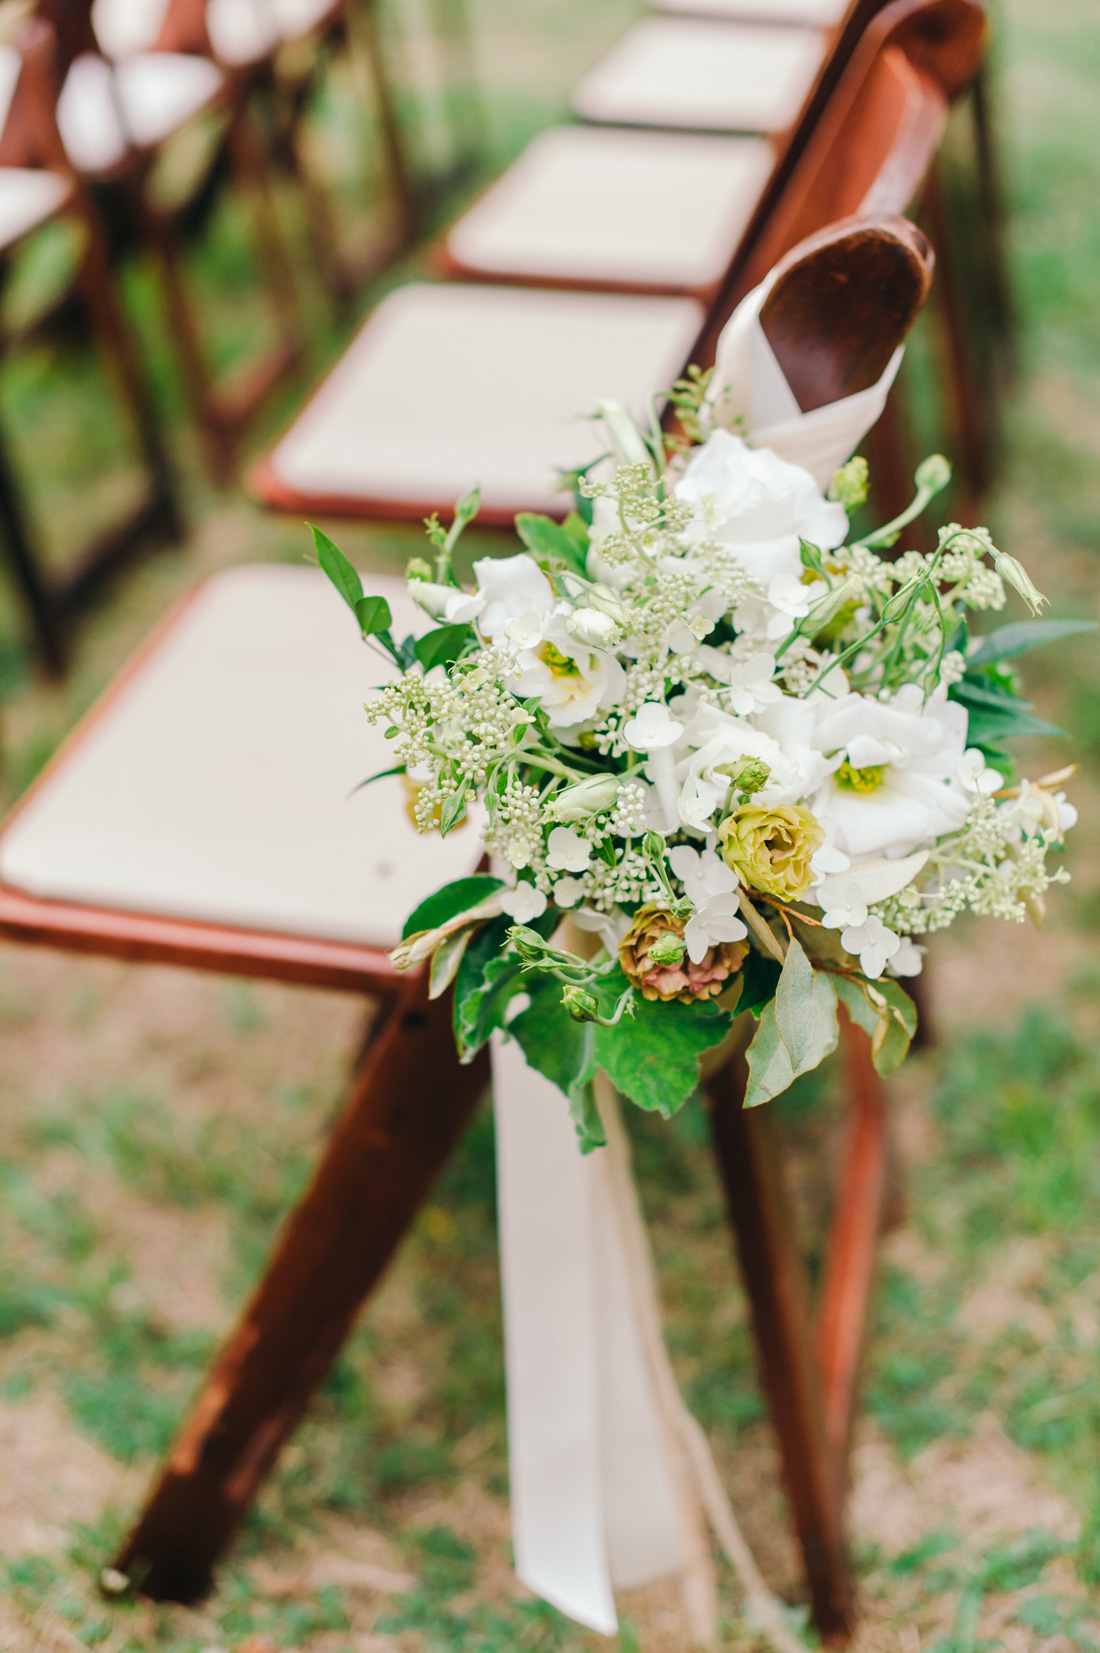 Garden Party Wedding, flowers by LynnVale Studios, photo by Rebekah Murray